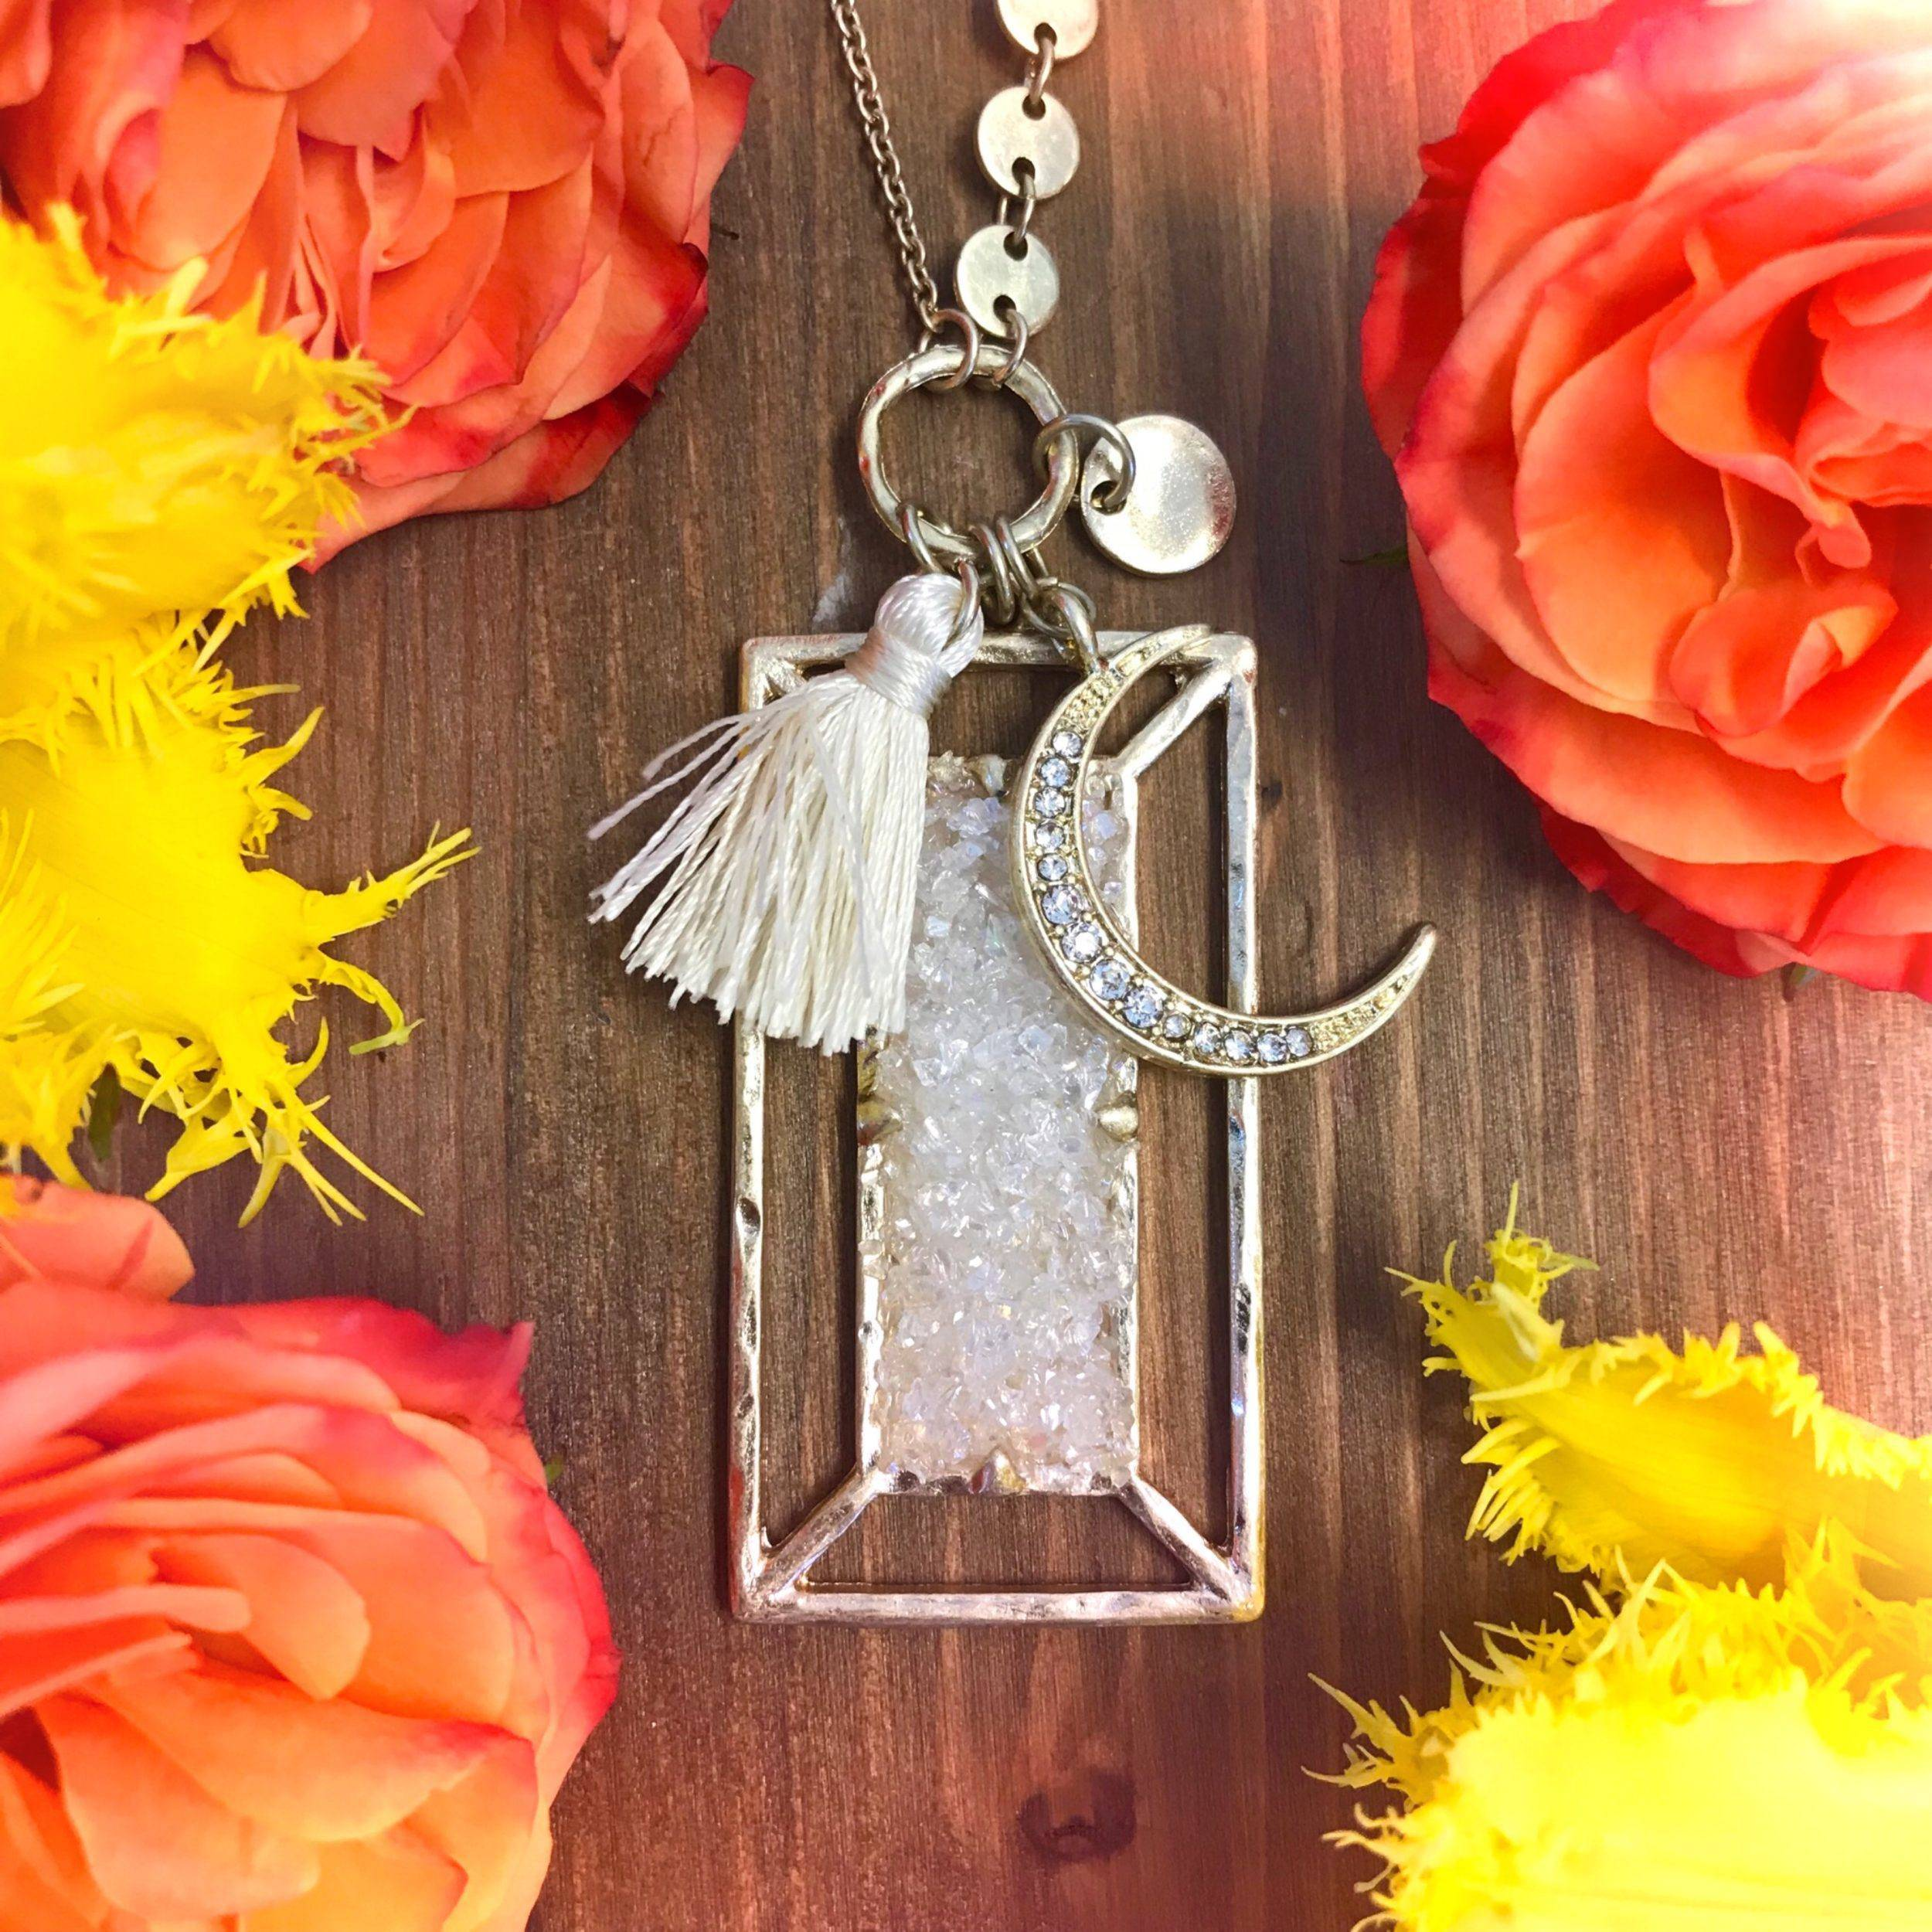 Druzy_Moon_Charm_Necklace_1of2_8_14